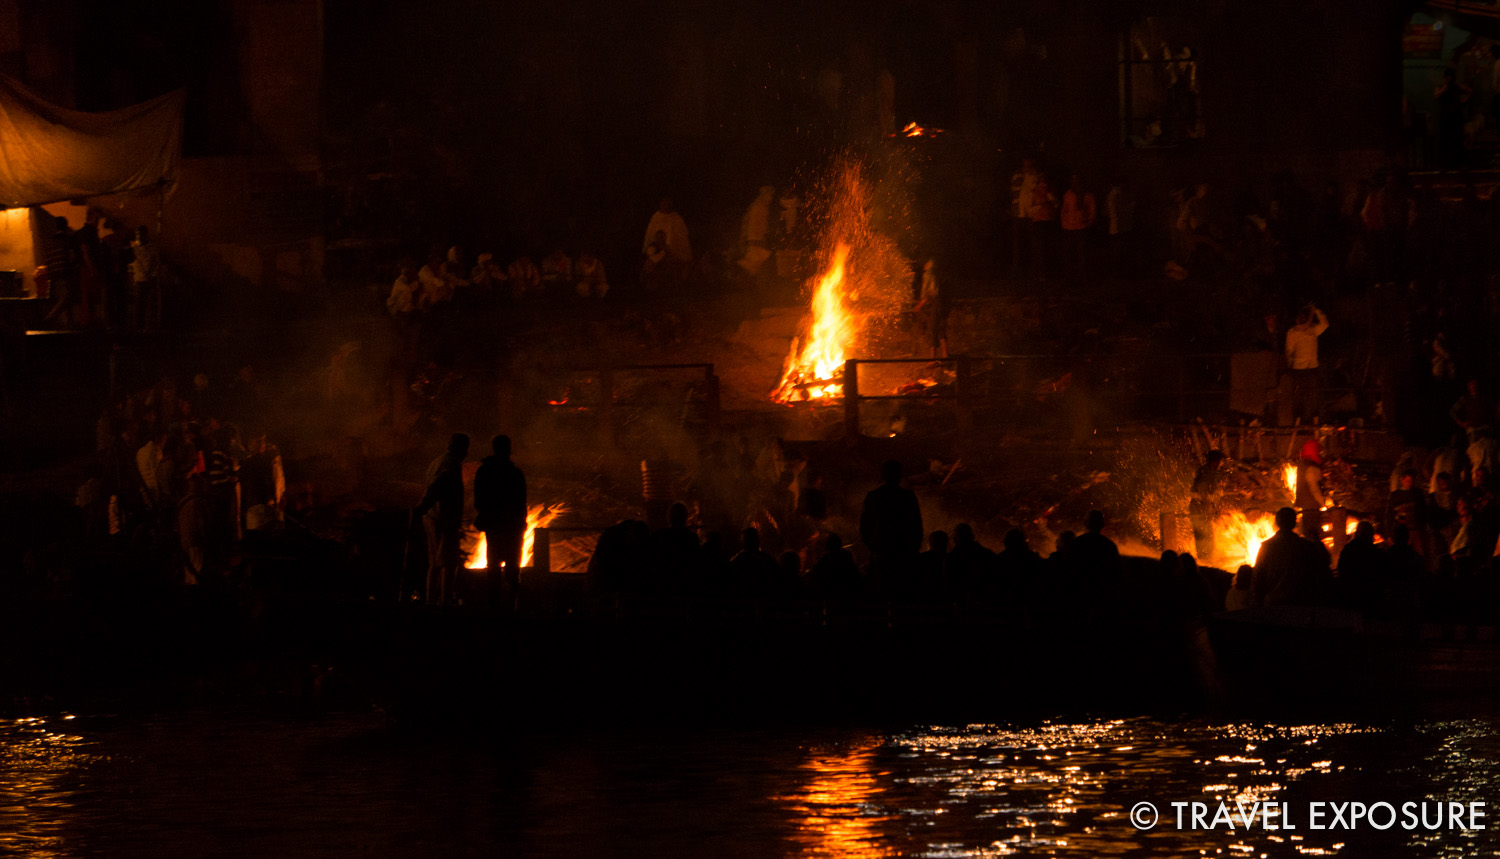 A cremation on the banks of the Ganges river in Varanasi. Having your ashes spread in the river, or even dying in Varanasi, is thought to help break the cycle of reincarnation giving salvation to the deceased.